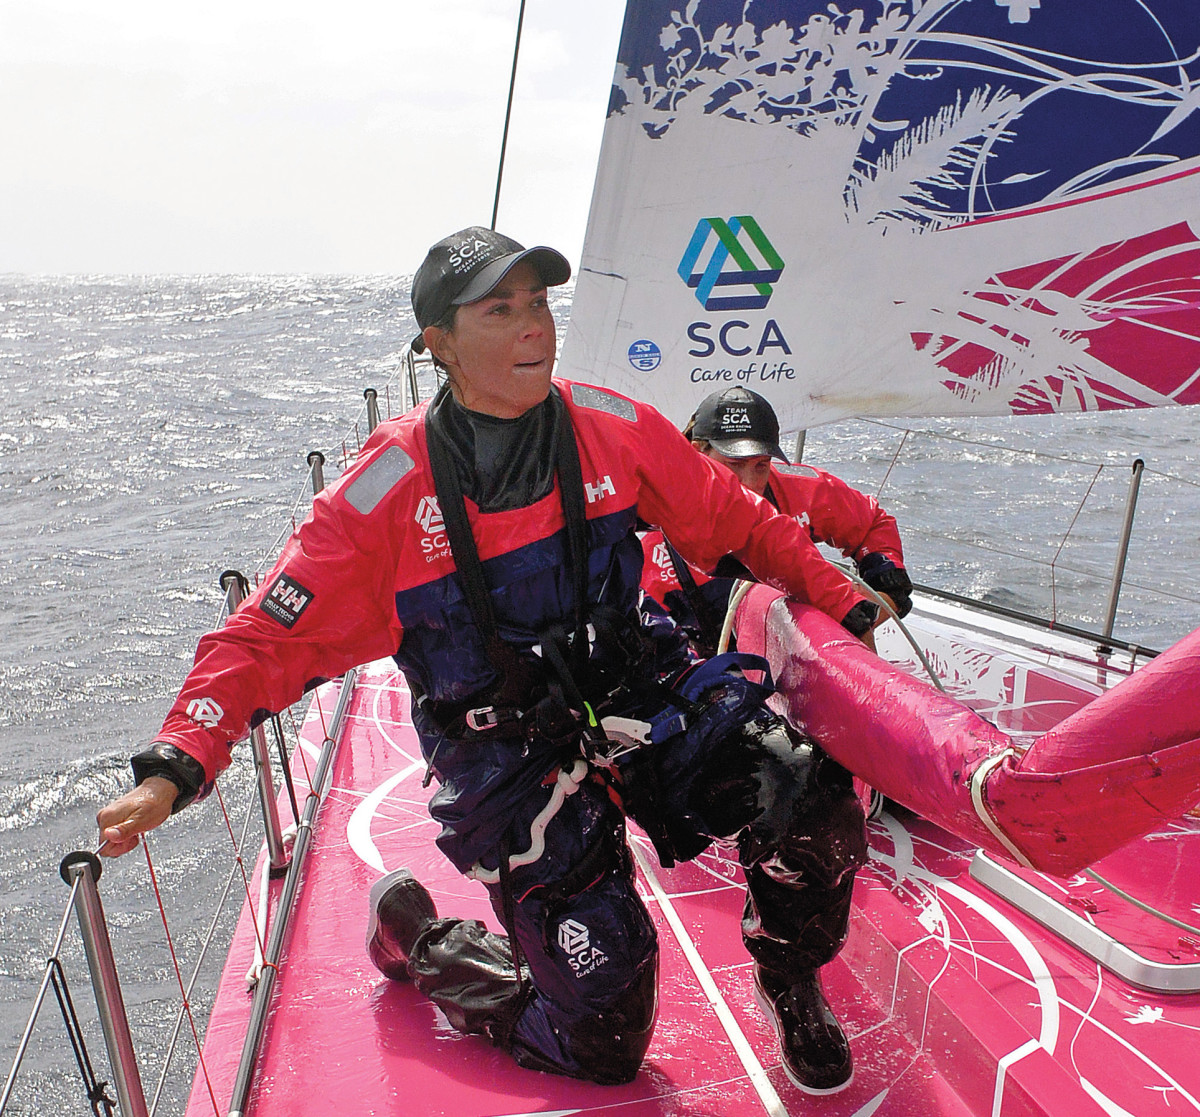 The professional sailing circuit is no place for the faint of heart or weak of body, especially when it comes to ocean racing